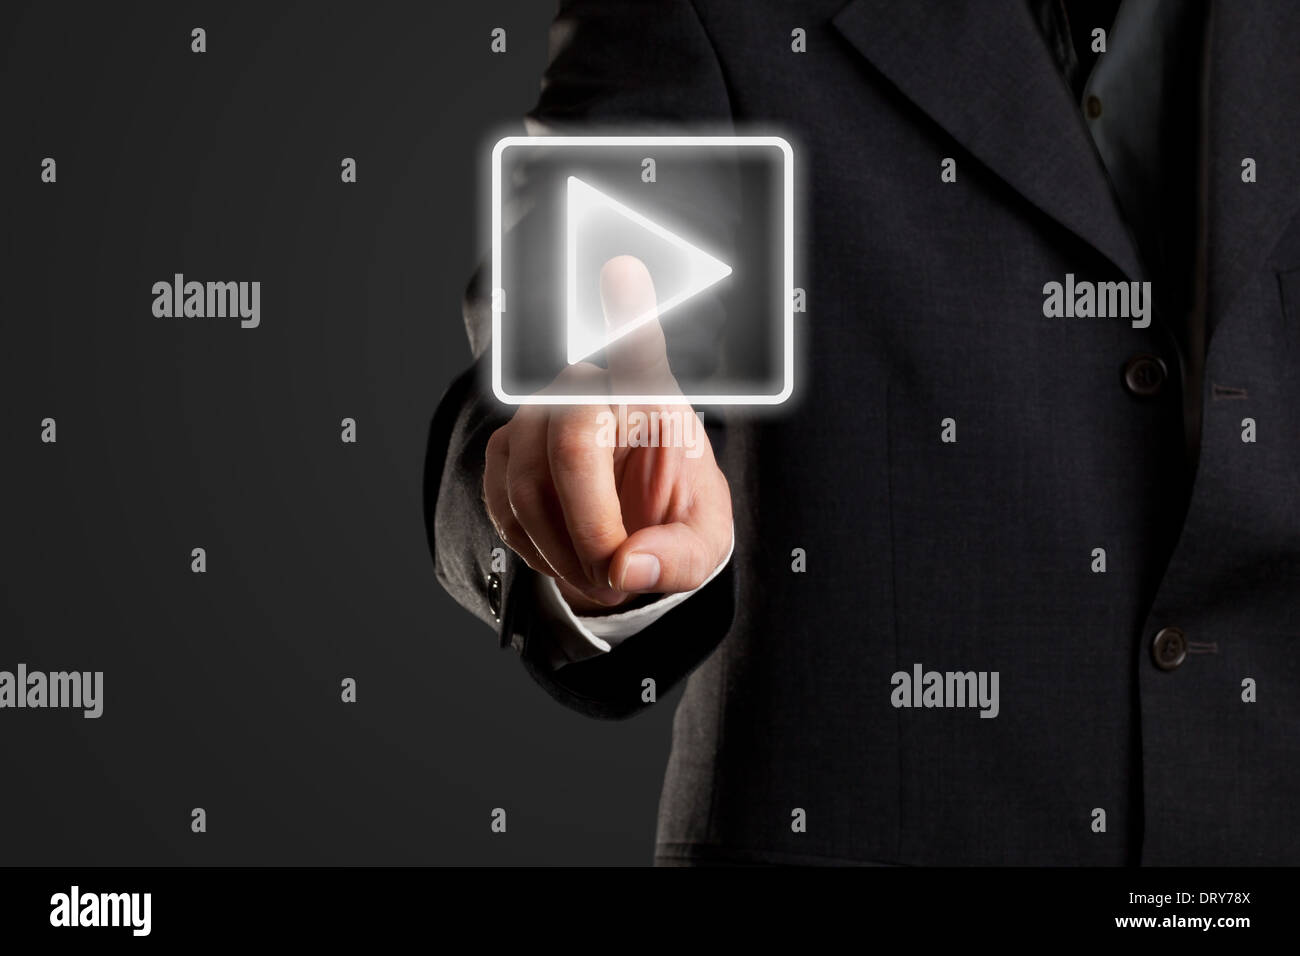 Businessman pressing start/ play button on virtual screen - Stock Image